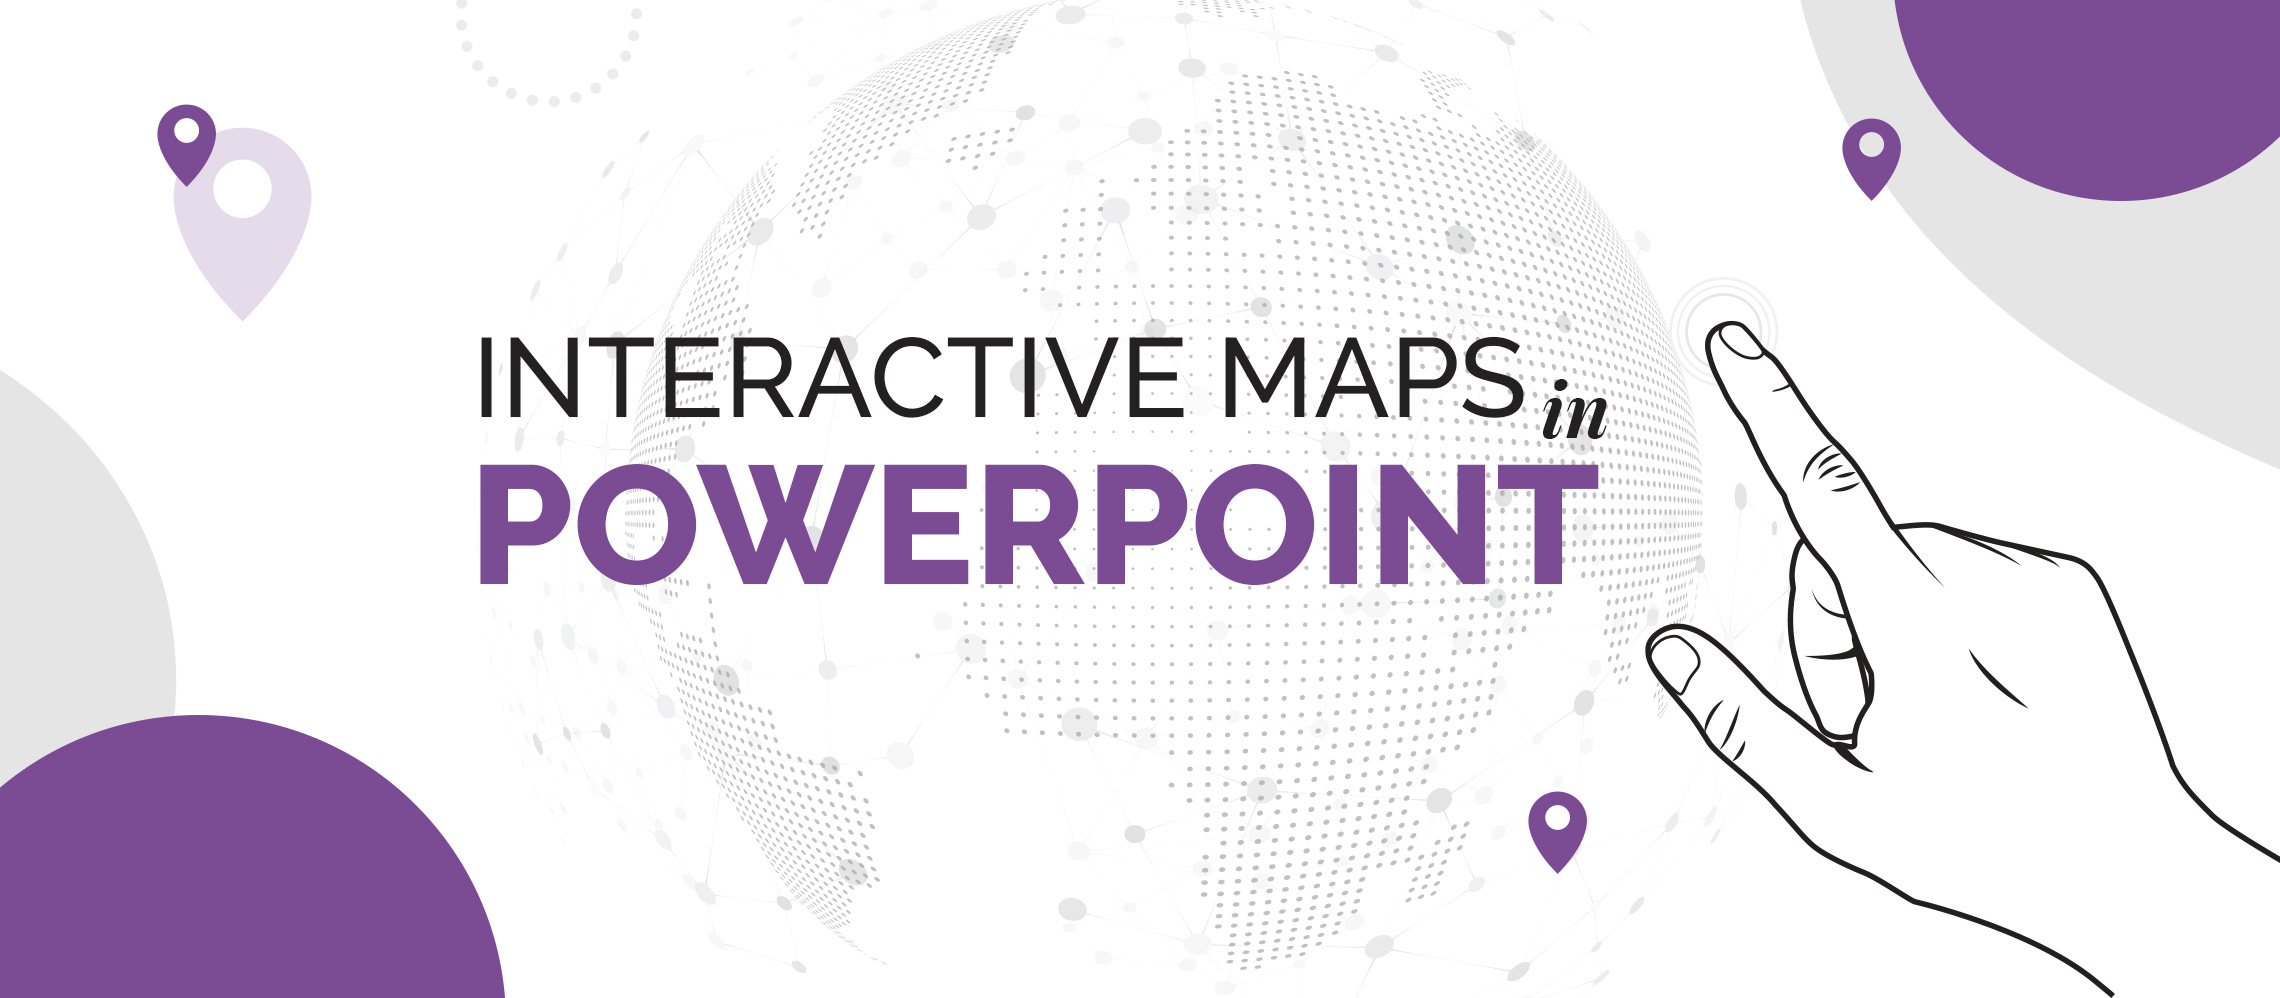 Map Of Uk For Powerpoint.How To Create An Interactive Map In Powerpoint Buffalo 7